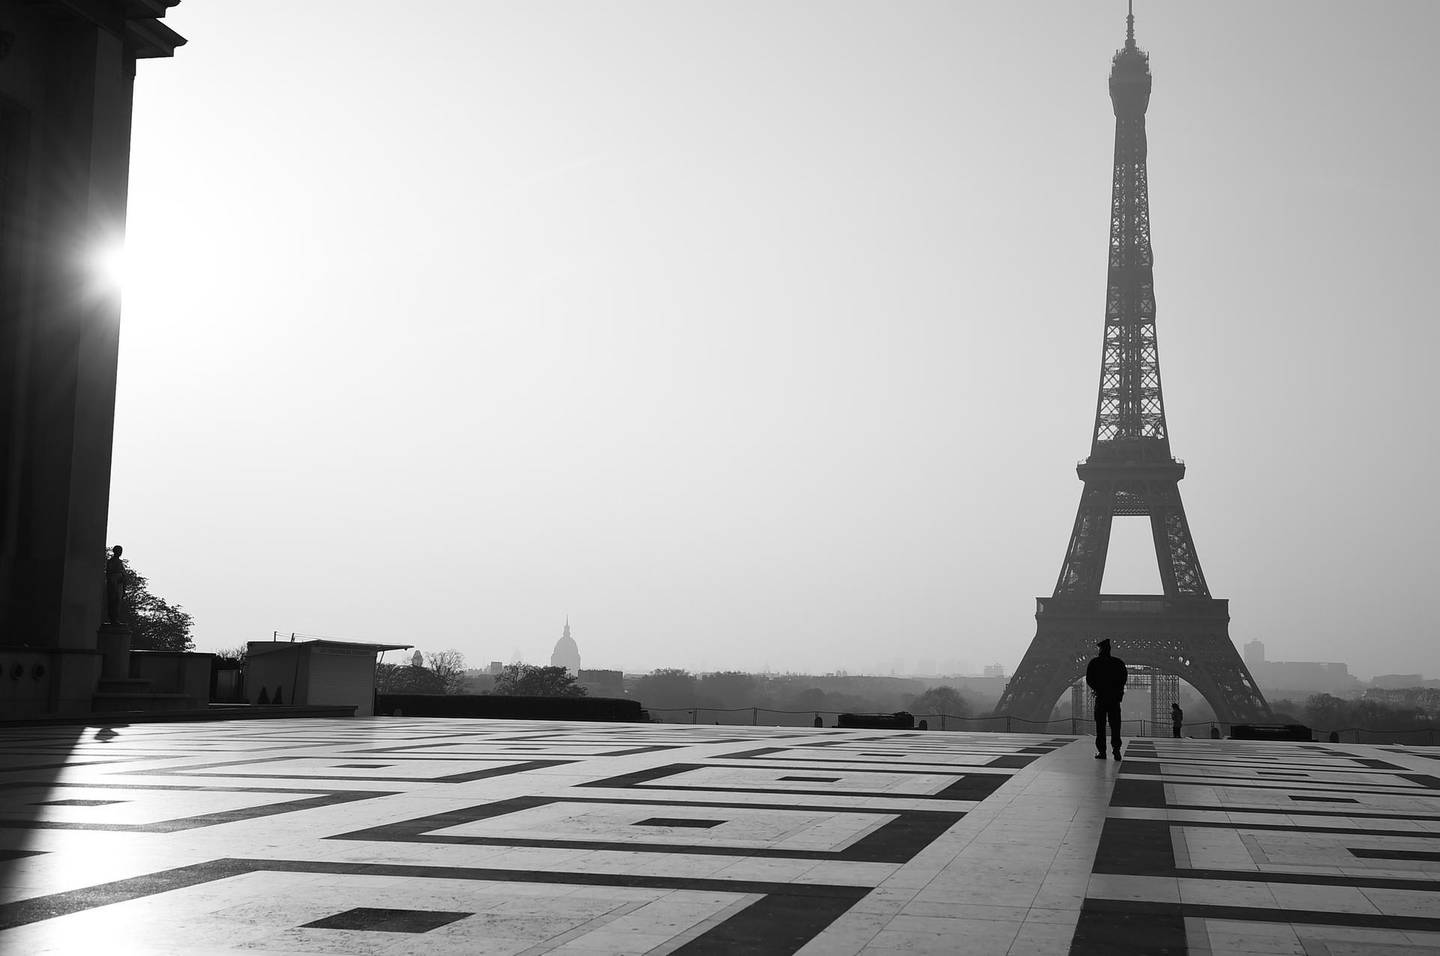 PARIS, FRANCE - MARCH 28: EDITORS NOTE : (This image has been converted to Black and White). A police officer walks on Trocadero square with the Eiffel tower in the background on March 28, 2020 in Paris, France. The country has introduced fines for people caught violating its nationwide lockdown measures intended to stop the spread of COVID-19. The pandemic has spread to at least 182 countries, claiming over 30,000 lives and infecting hundreds of thousands more. (Photo by Pascal Le Segretain/Getty Images)